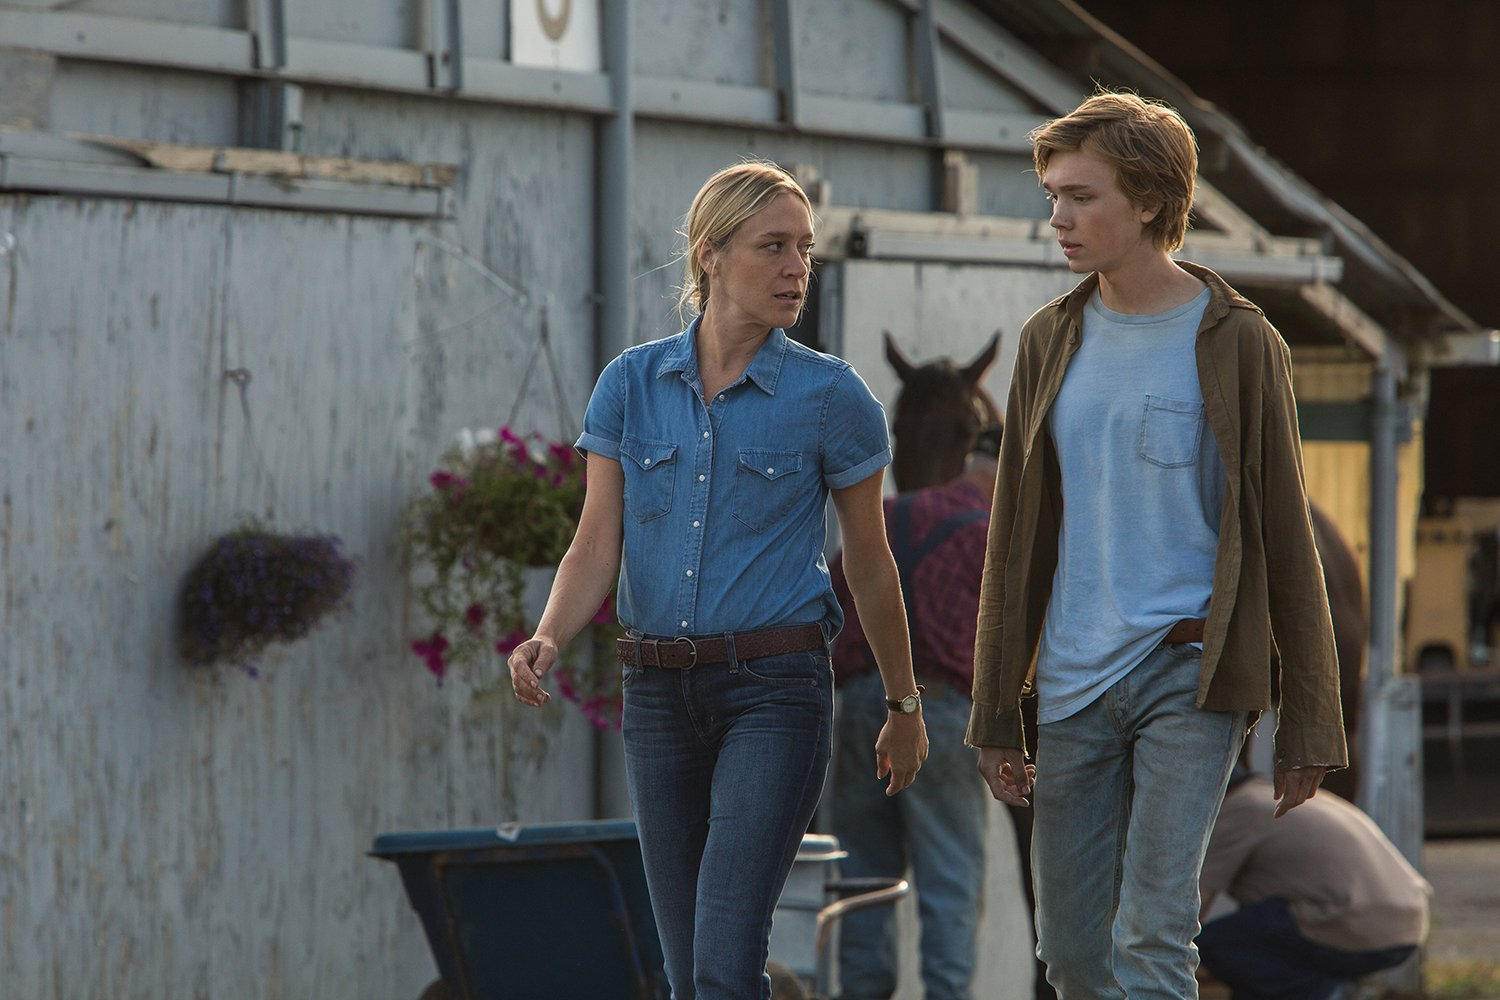 Interview: Chloë Sevigny Talks Lean on Pete, Indie Career, and More